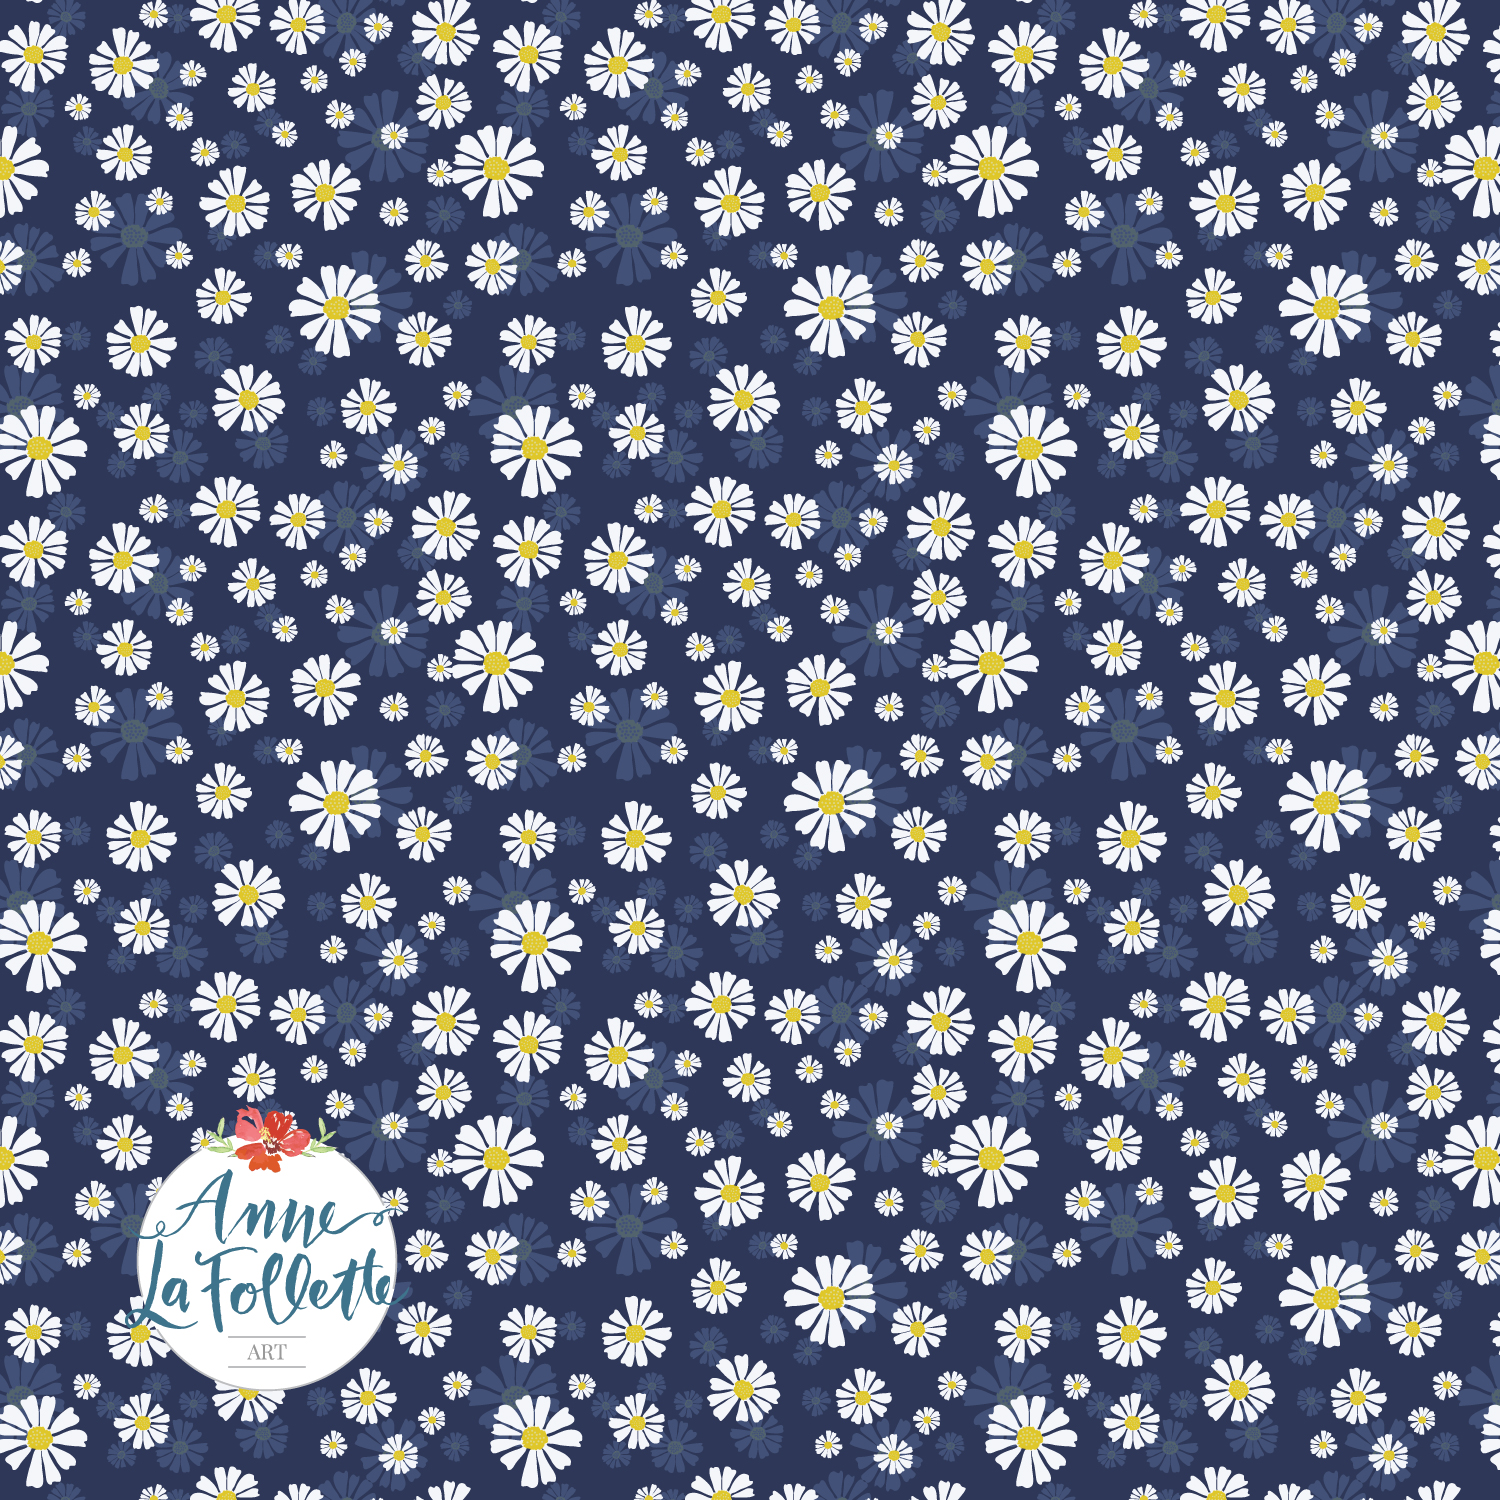 new-daisy-pattern.jpg